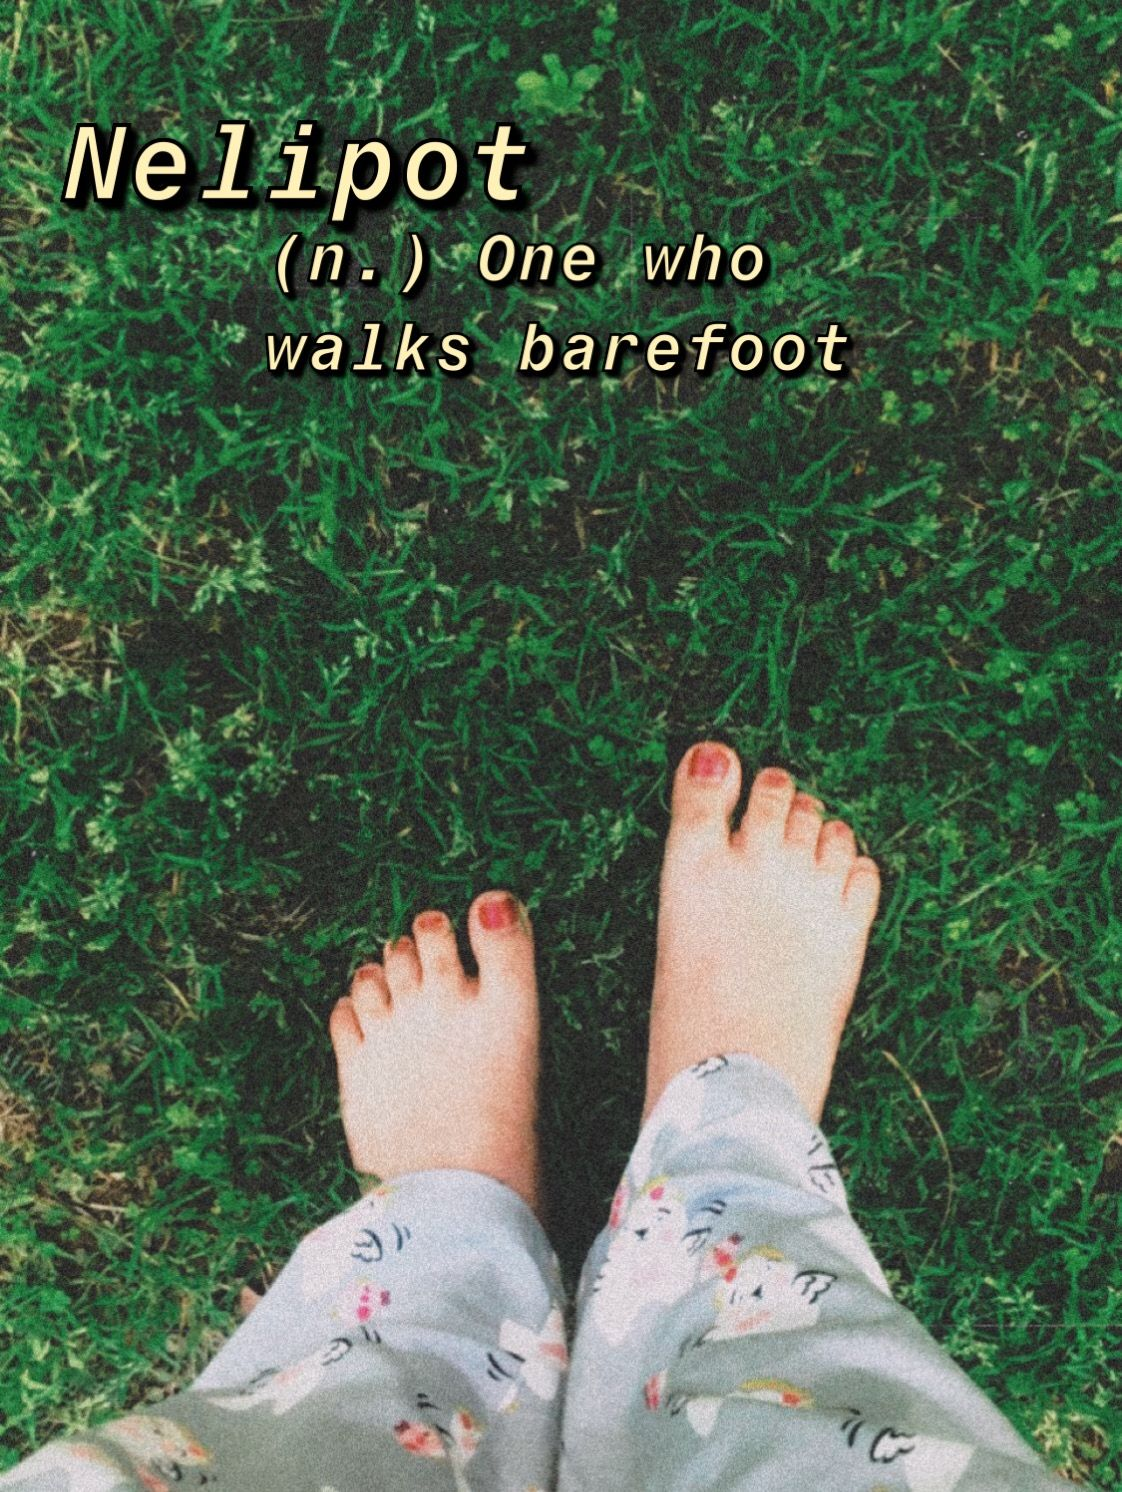 Barefoot on grass in 2020 instagram story ideas